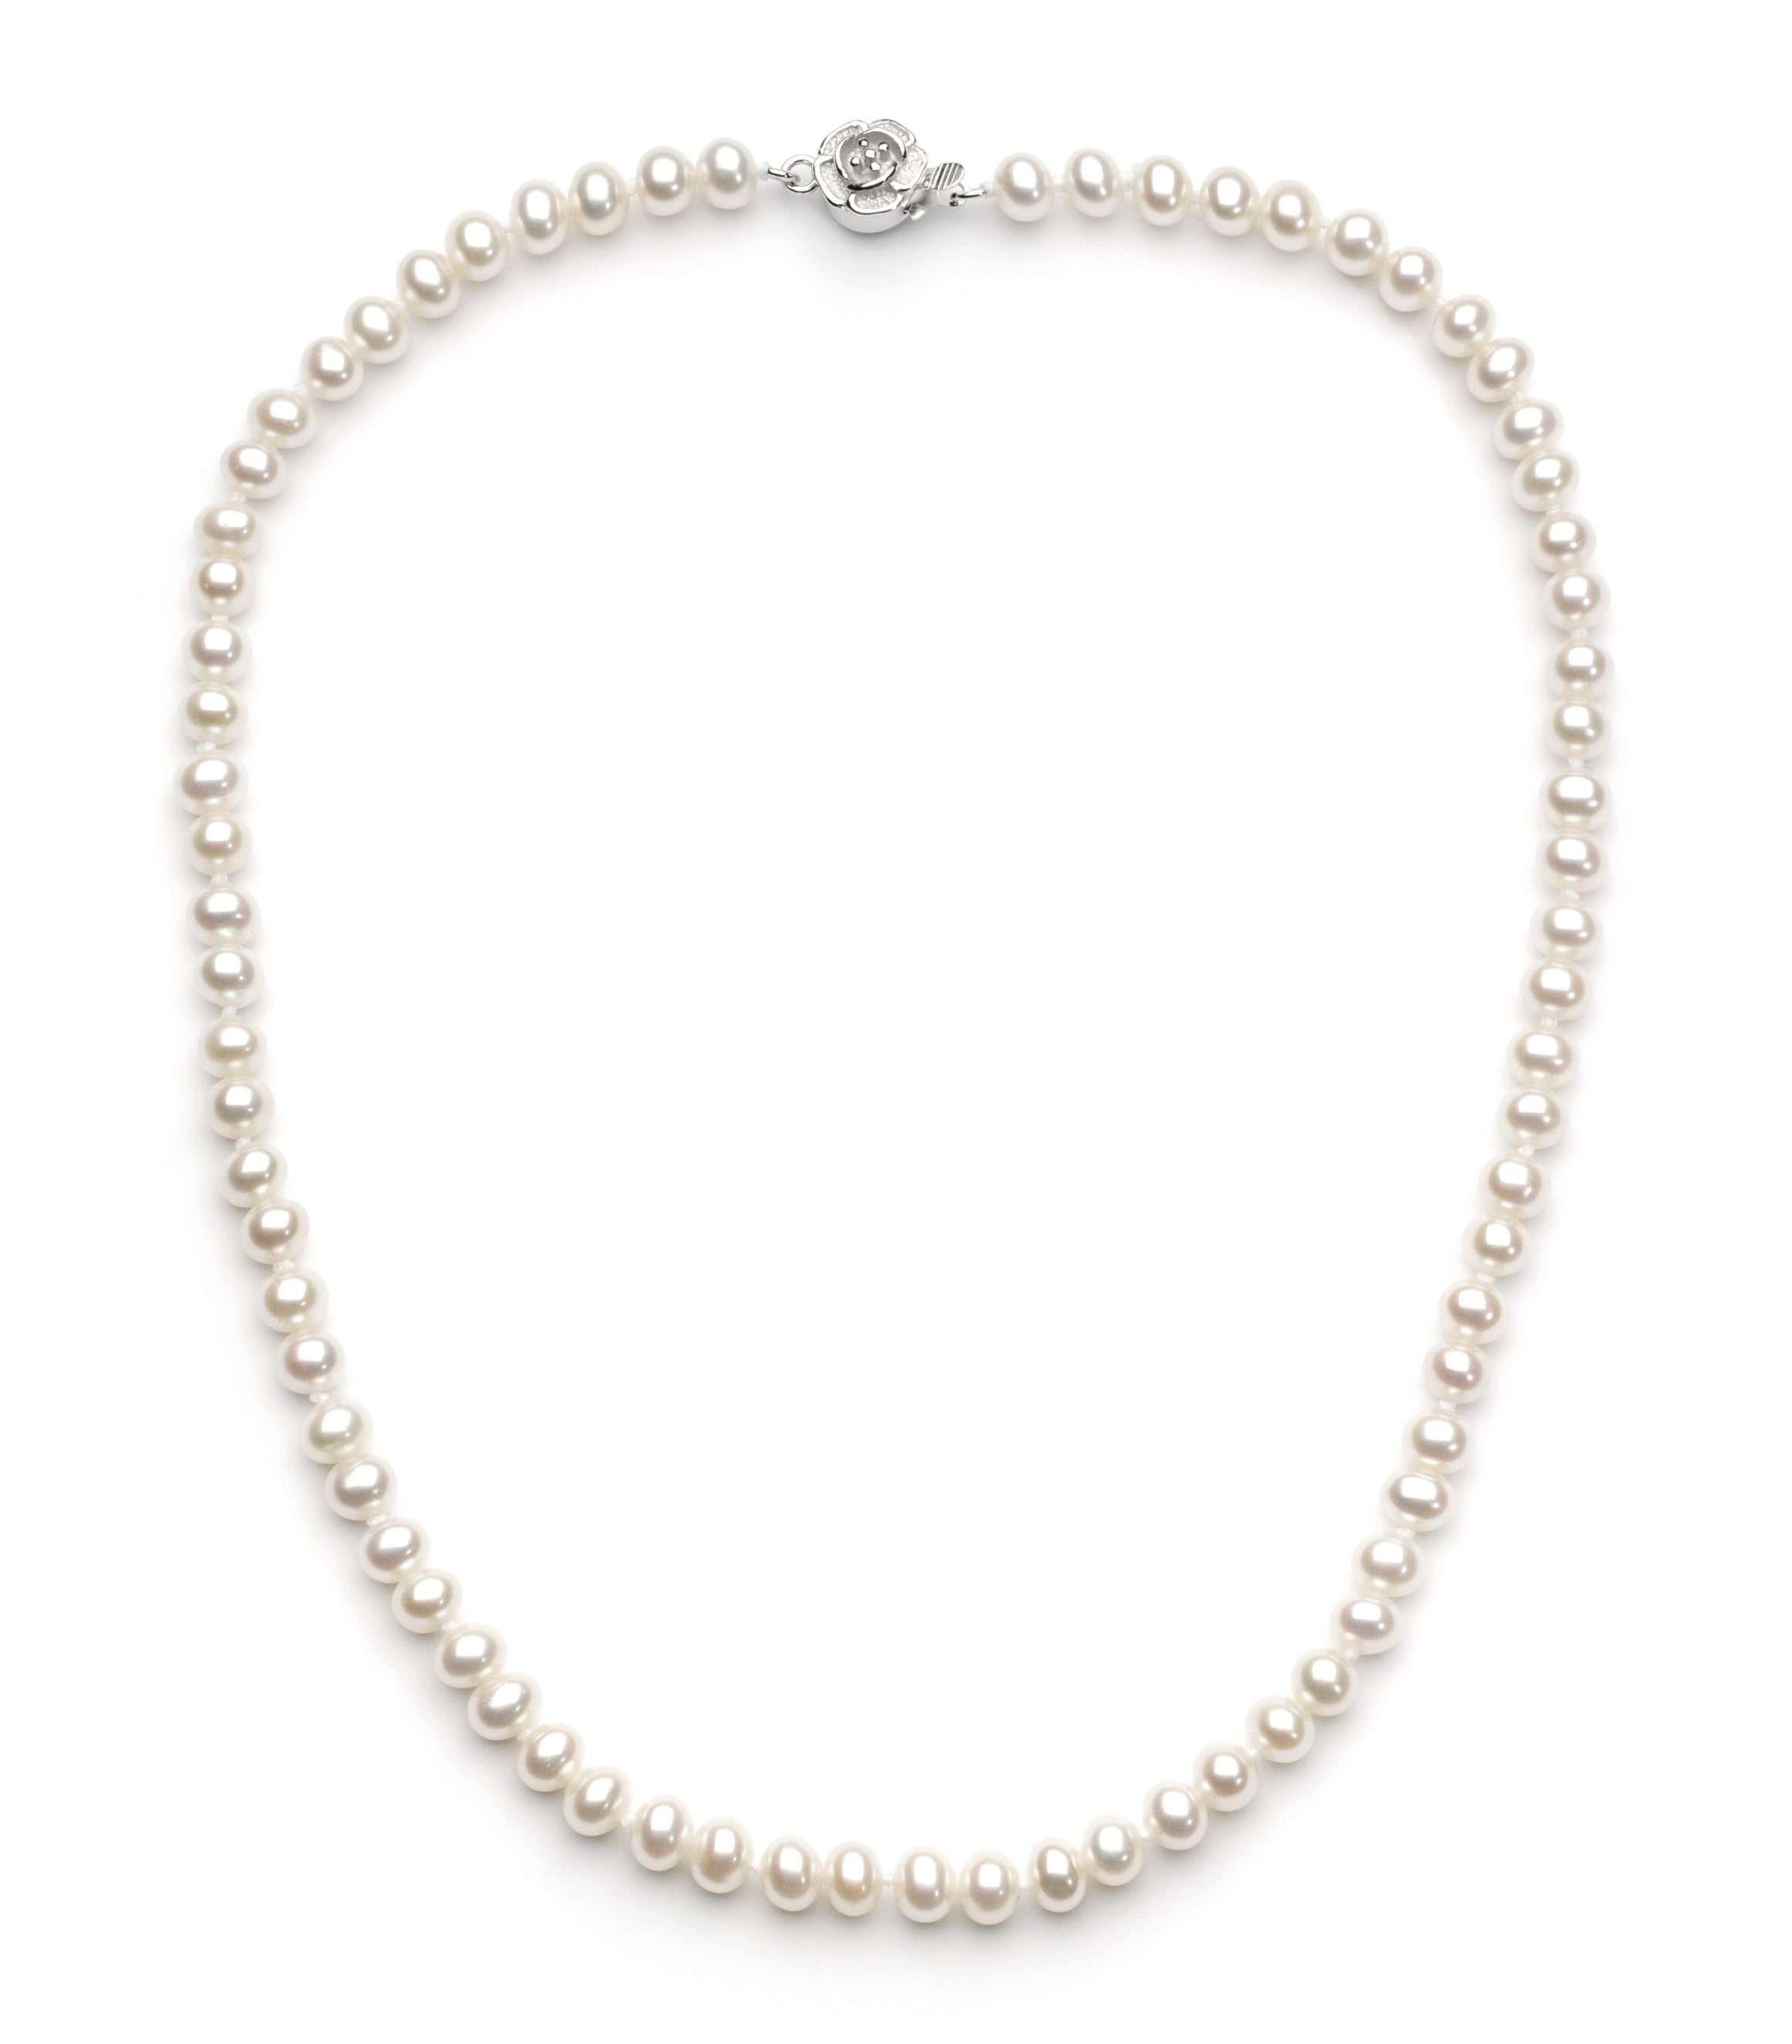 5.0-6.0 mm White Freshwater Pearl Necklace